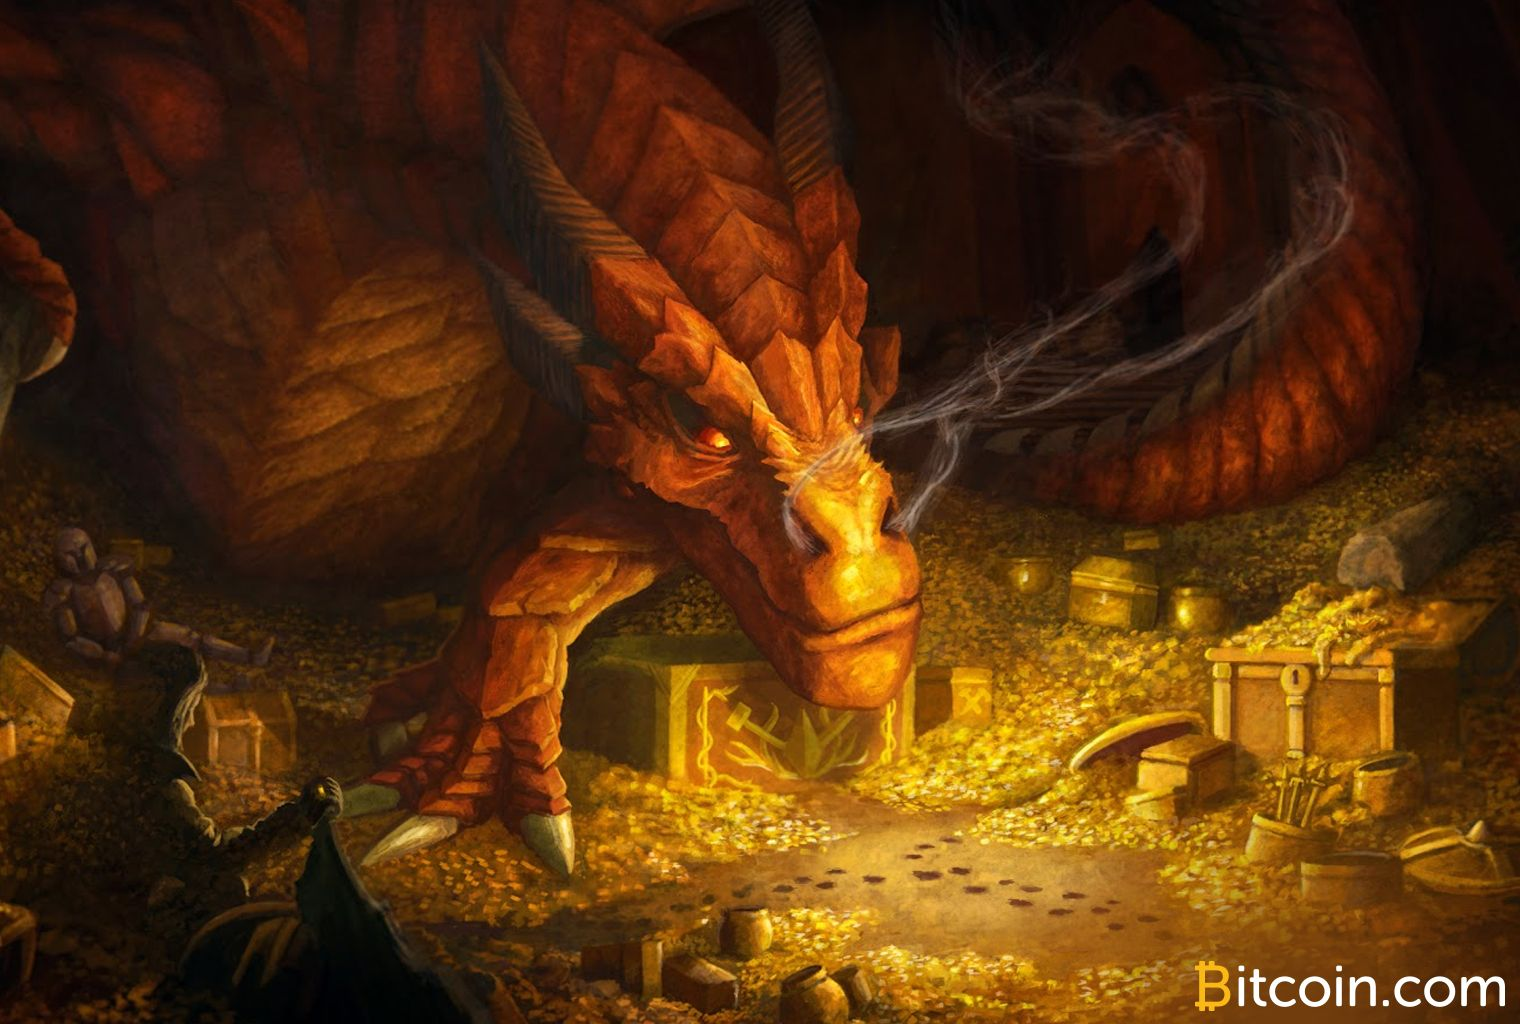 Over The Last Few Years Many Have Claimed That Bitcoin Core Btc Has Turned Into Or Will Soon Become A Store Of Value Sov Smaug Smaug Dragon The Hobbit